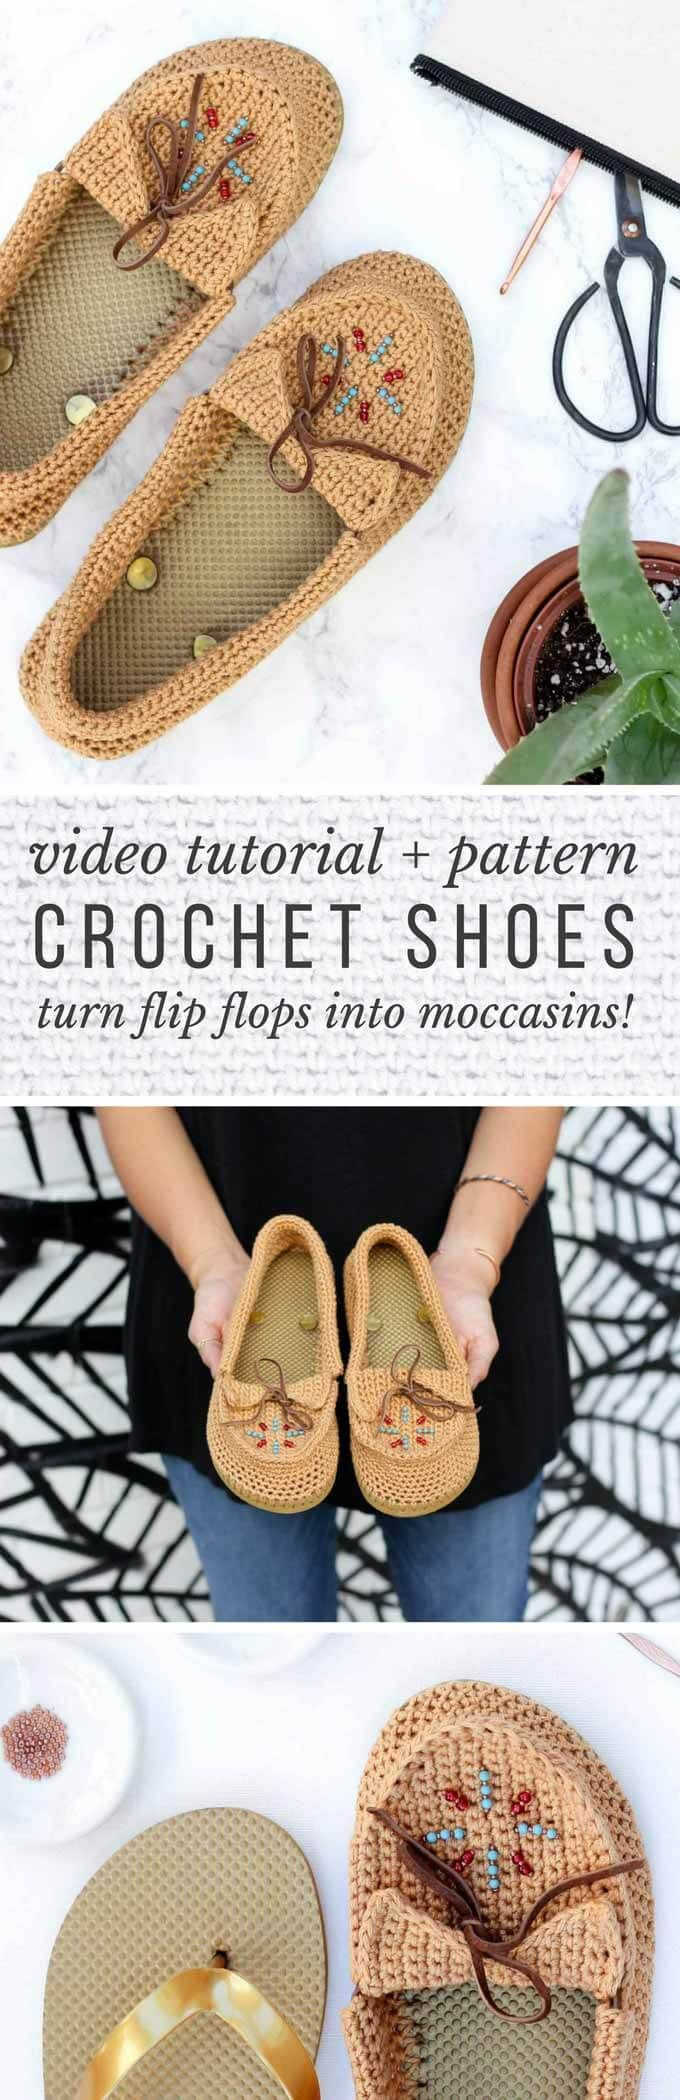 """Calling all boho fans! Learn how to crochet shoes with flip flop soles with this free crochet moccasin pattern and video tutorial! These modern crochet moccasins make super comfortable women's shoes or slippers and can be customized however you wish. Made from Lion Brand 24/7 Cotton in """"Camel"""" color. via @makeanddocrew"""